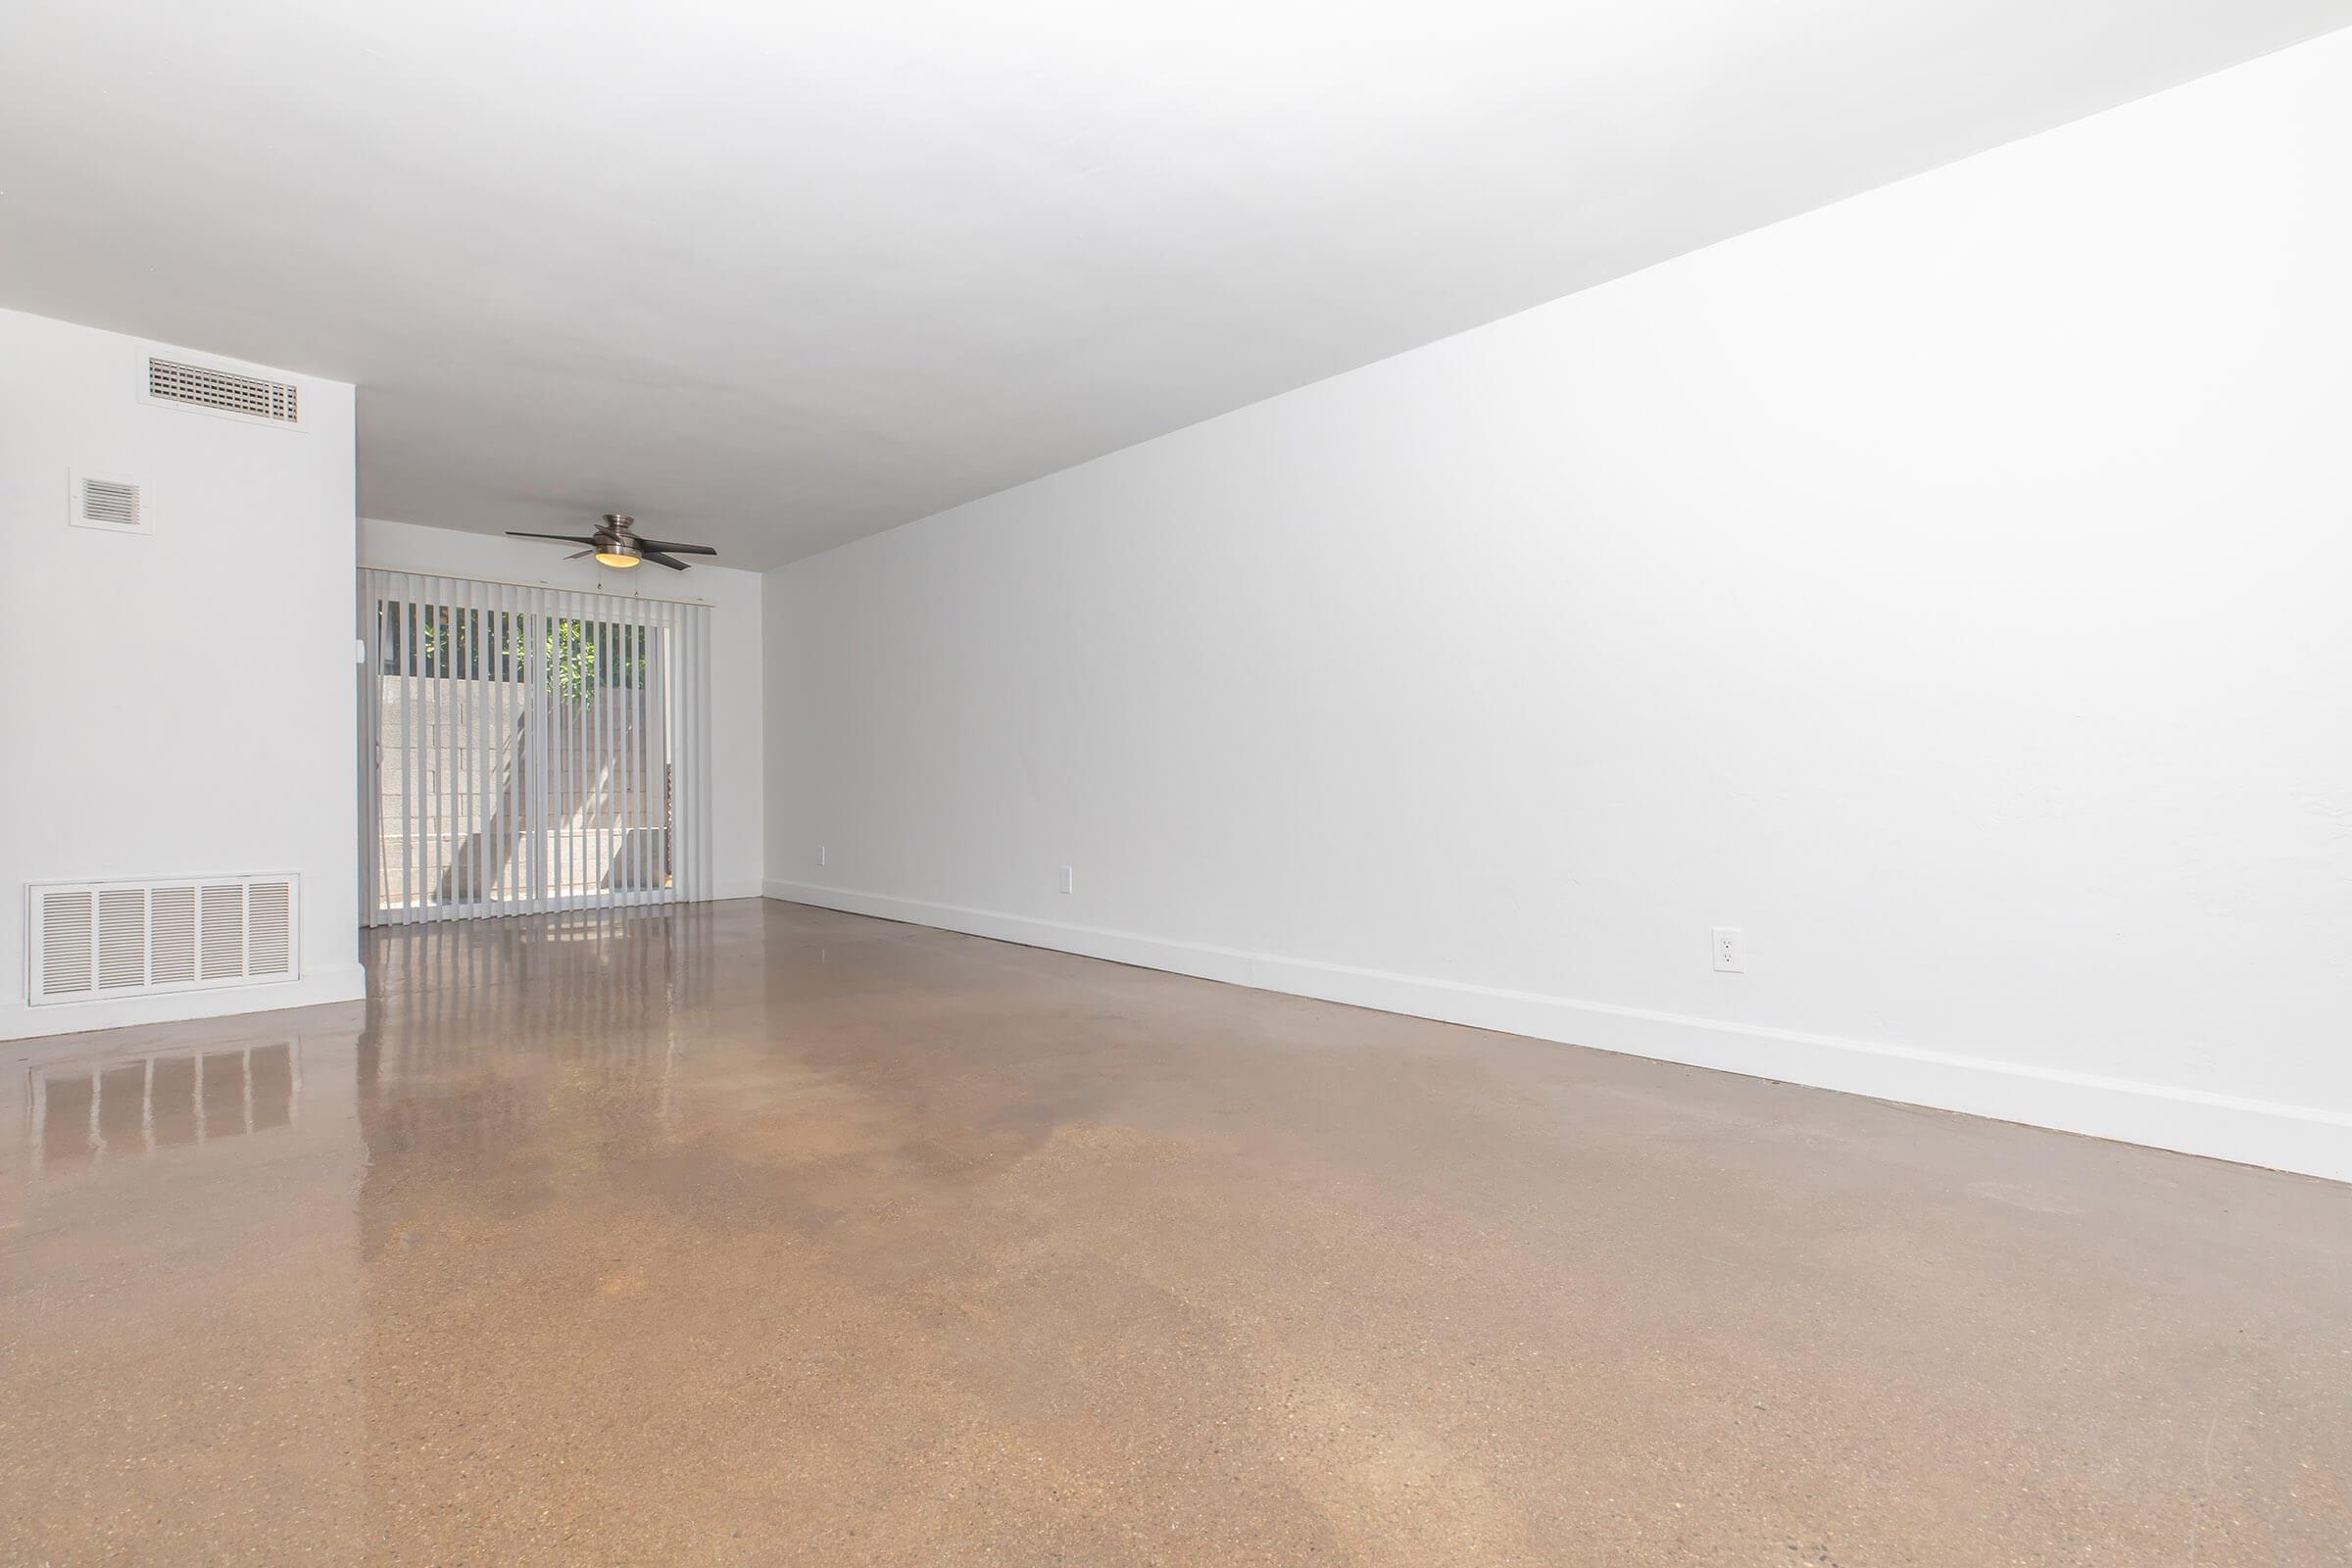 a person standing in a room